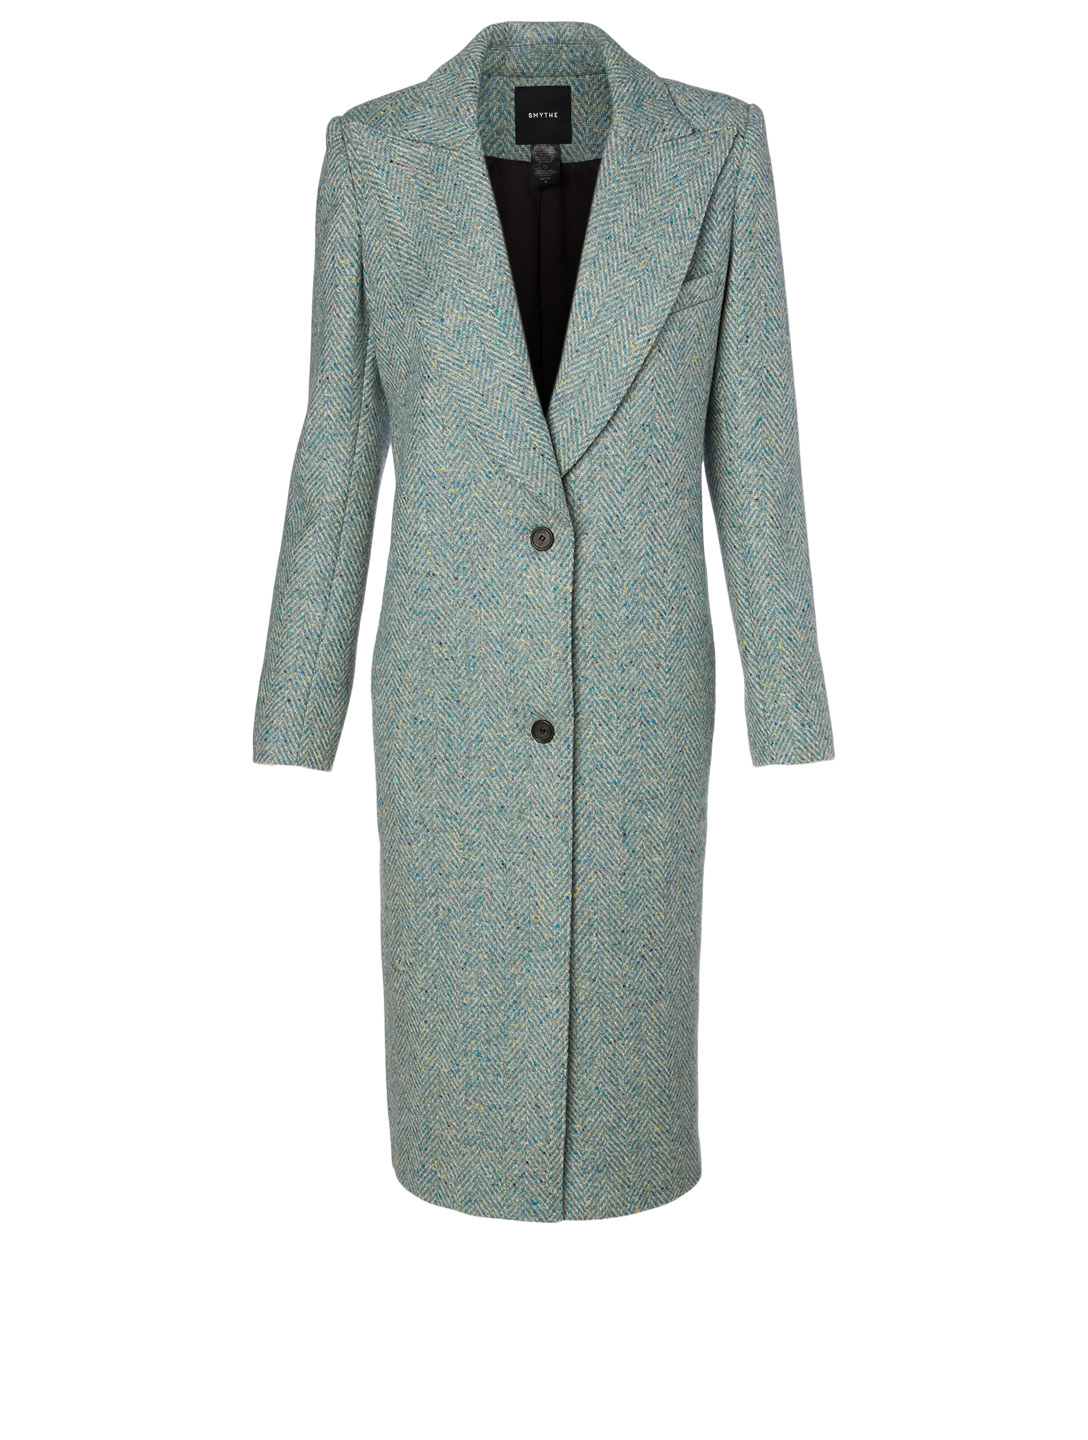 SMYTHE Wool Peaked Lapel Coat In Herringbone H Project Grey